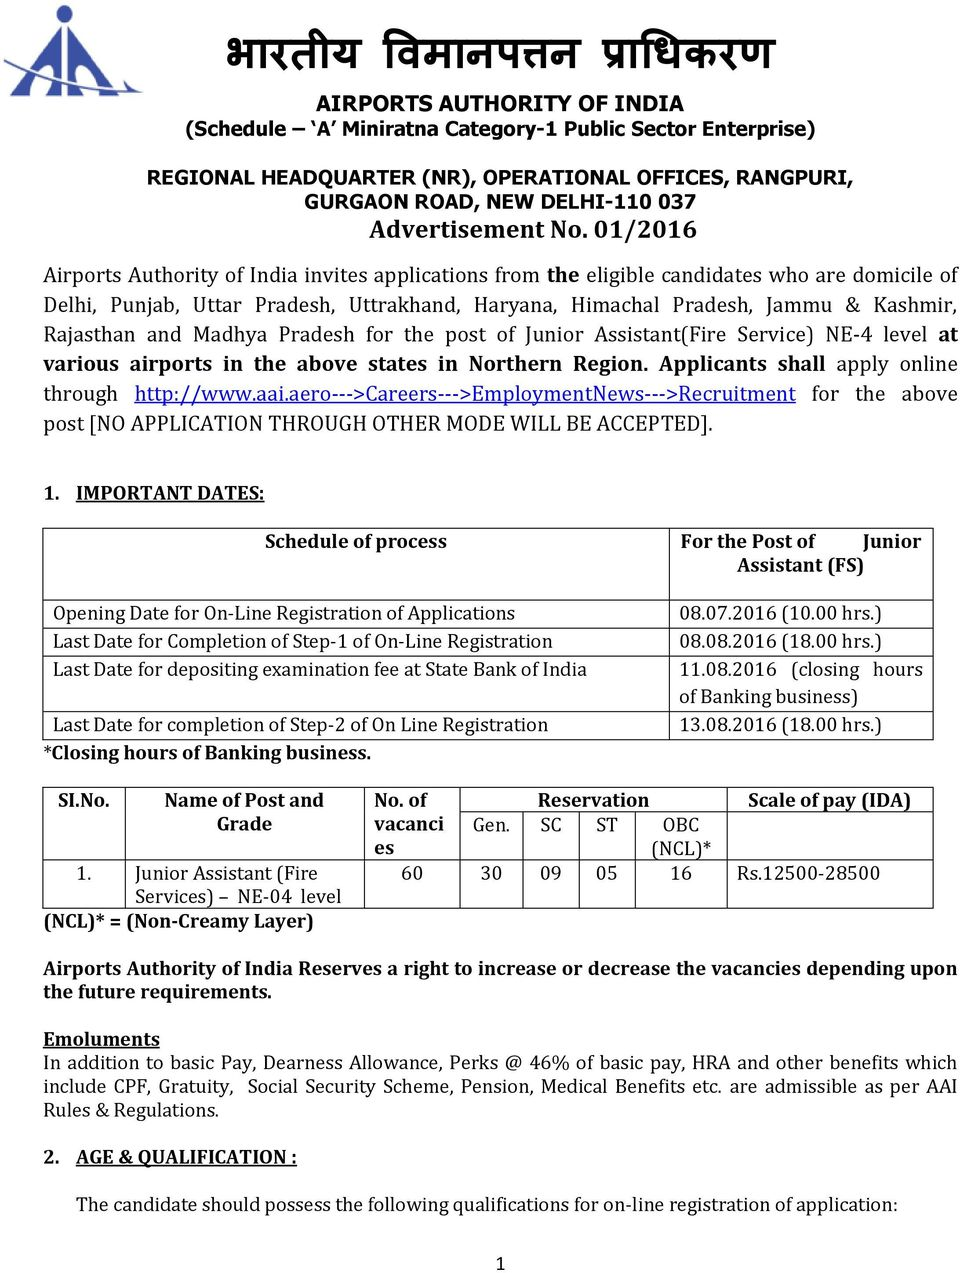 01/2016 Airports Authority of India invites applications from the eligible candidates who are domicile of Delhi, Punjab, Uttar Pradesh, Uttrakhand, Haryana, Himachal Pradesh, Jammu & Kashmir,